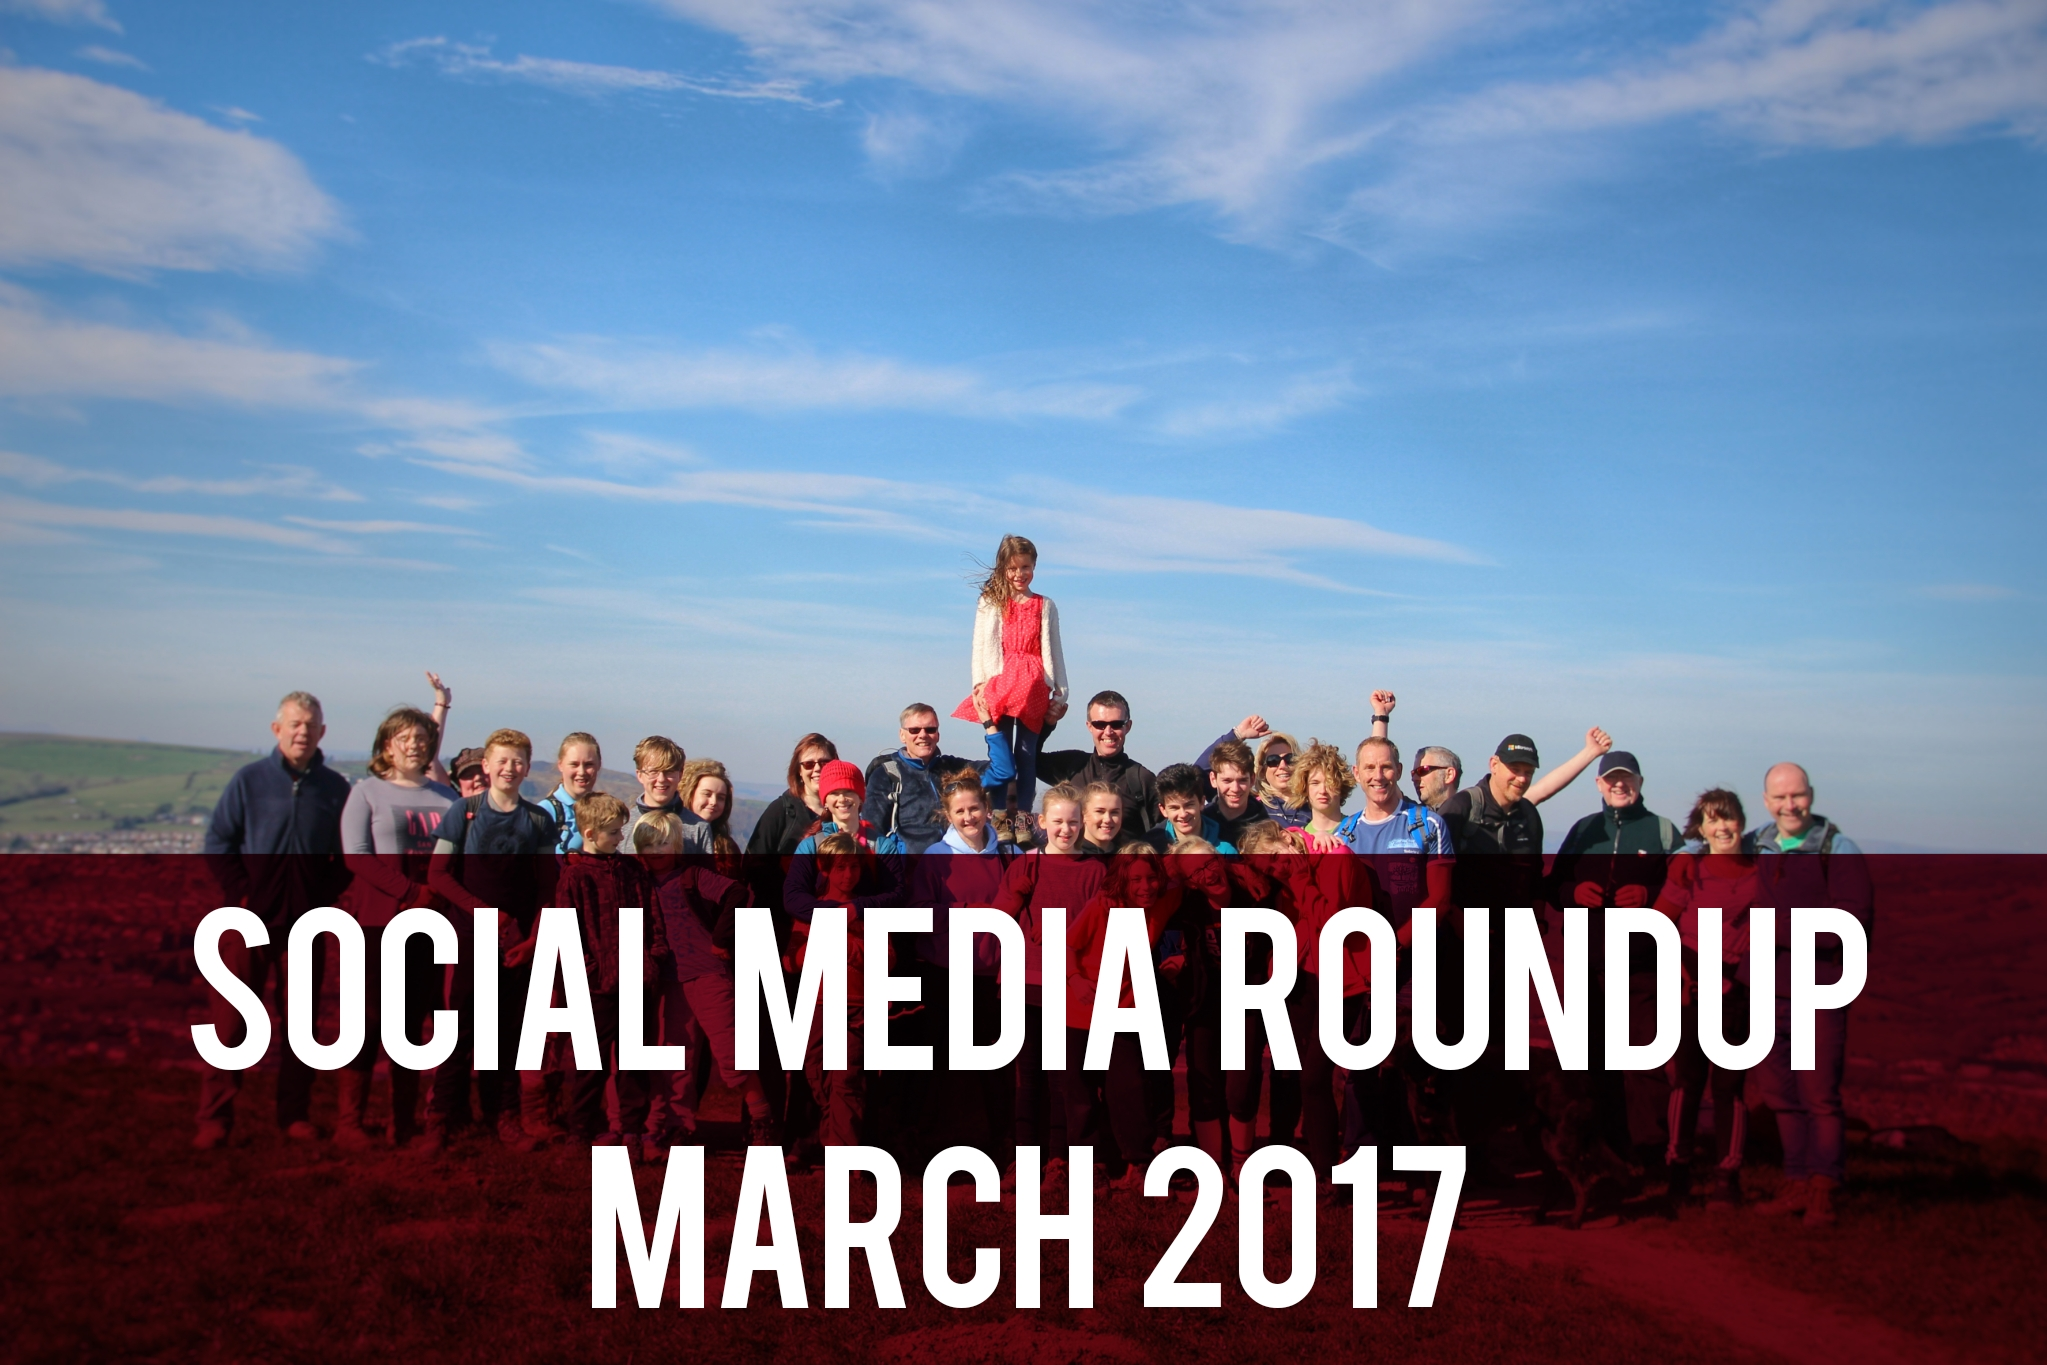 Social Media Roundup - March 2017 header